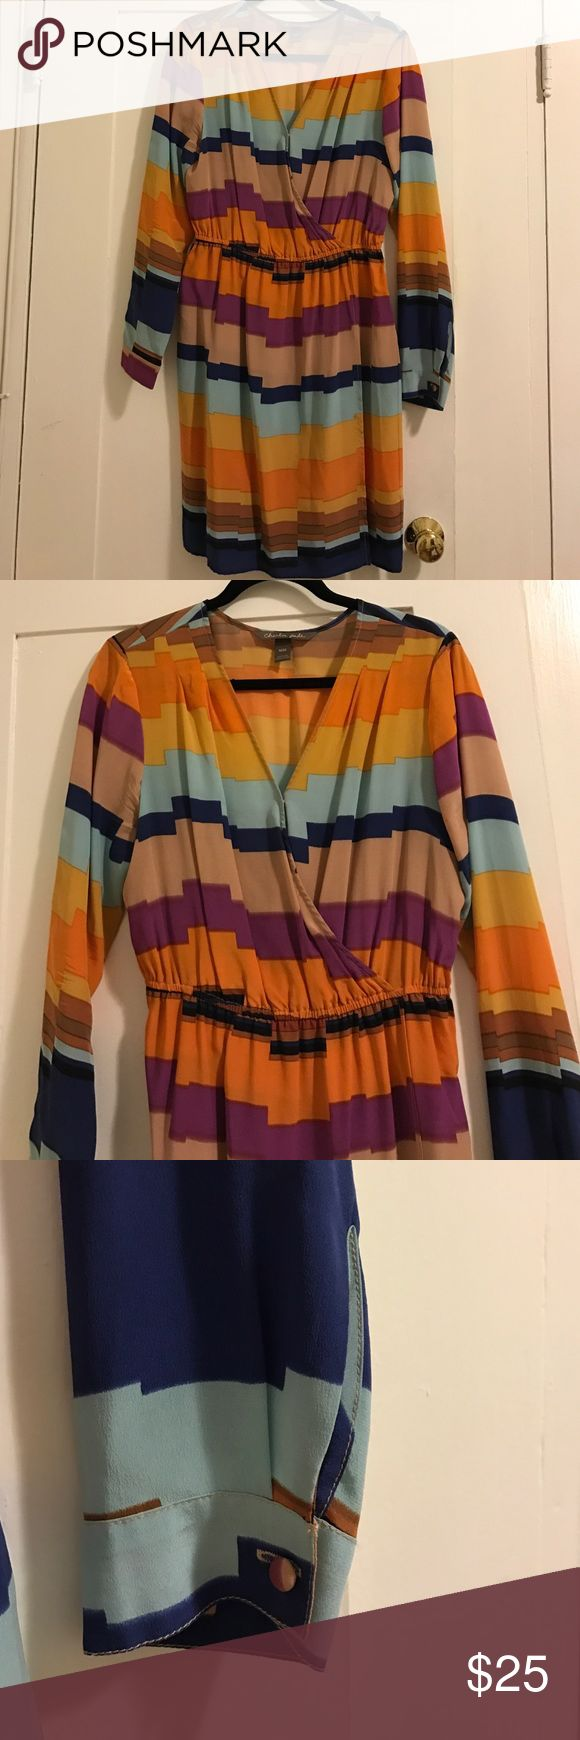 Multicolor Charlie Jade Slit Dress Multicolor Charlie Jade long sleeve slit dress with a V neckline. It is 100% silk. Outfit pairs perfectly with. Nude heels or sandals. Dresses Long Sleeve